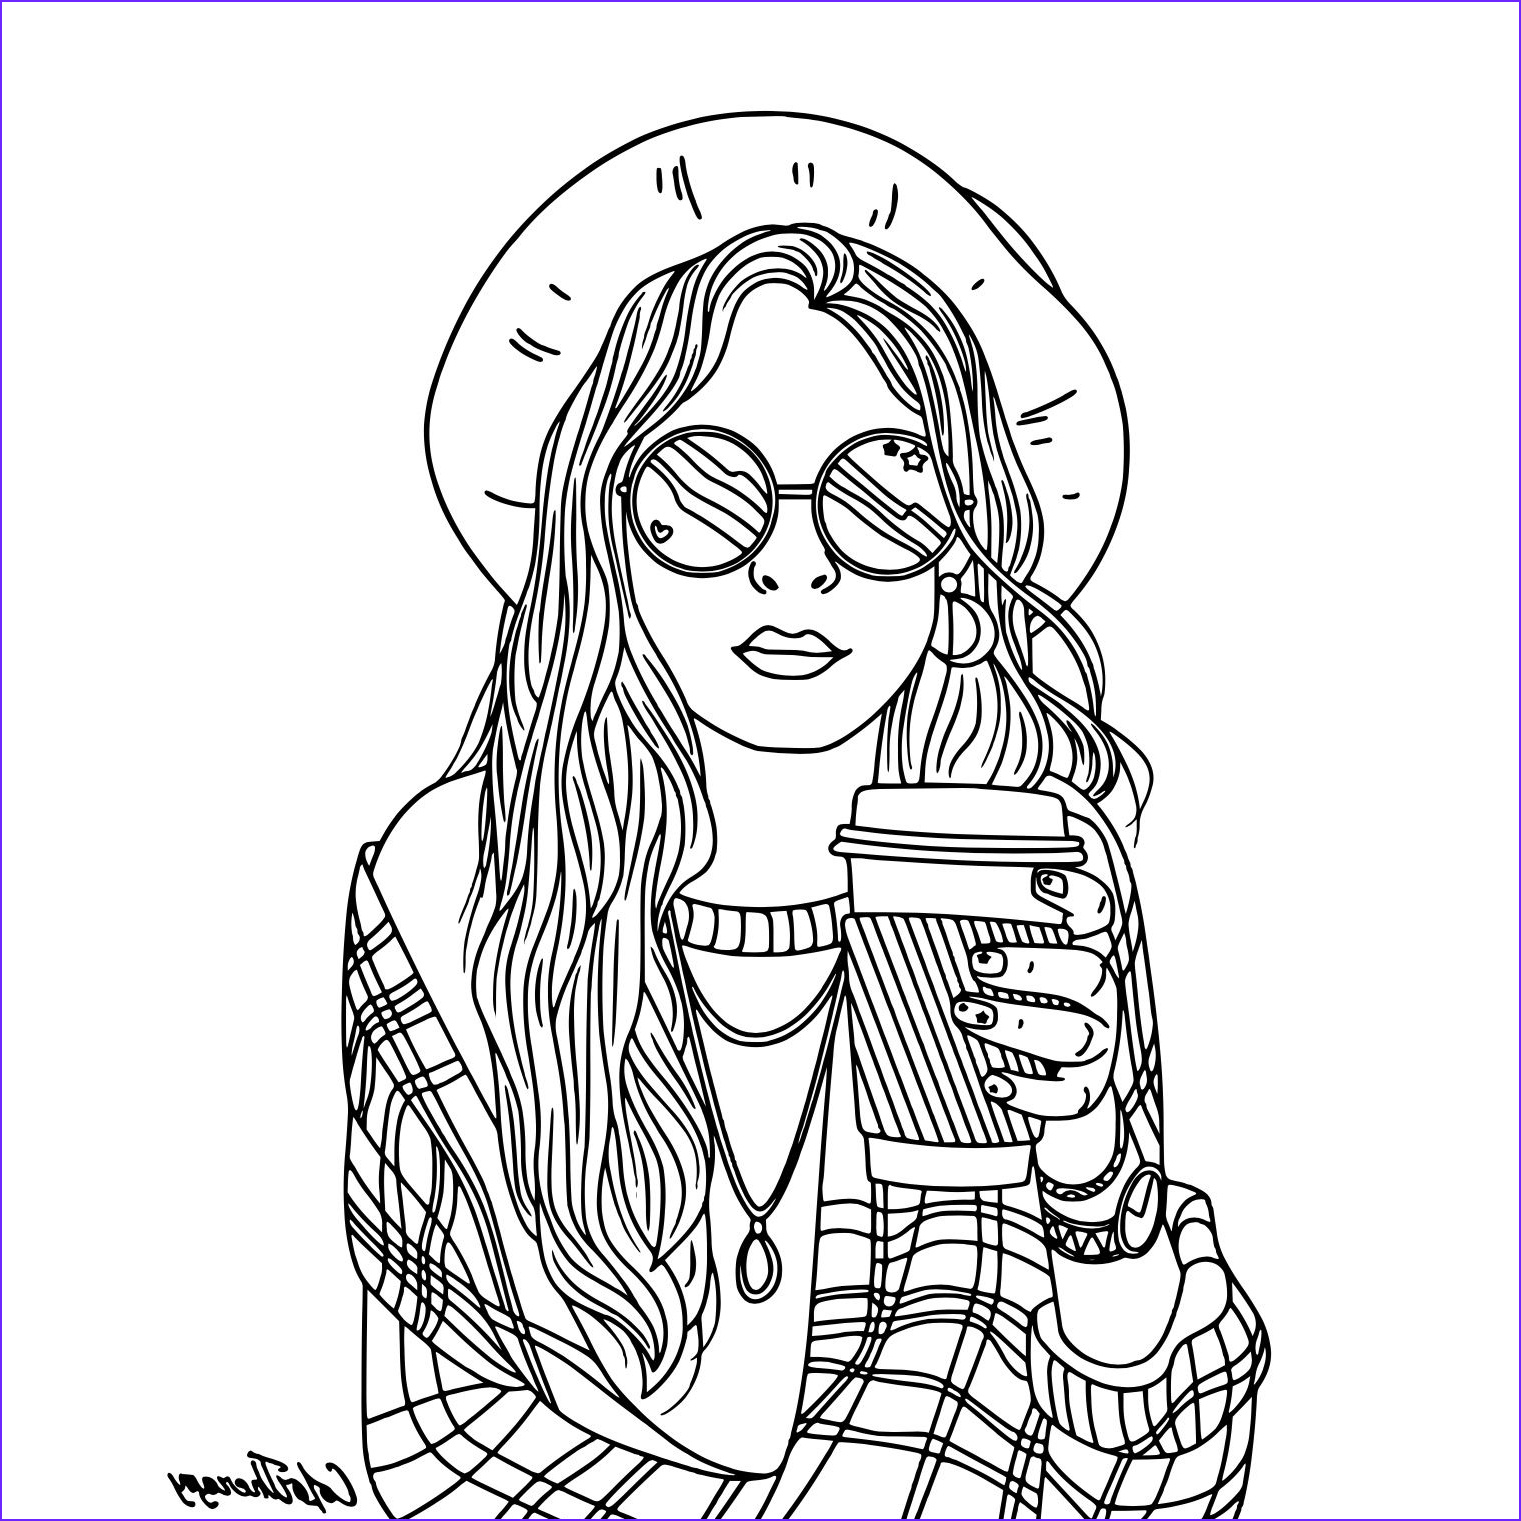 Coloring Pages People Unique Photos Pin by Desiree On Hair Bow